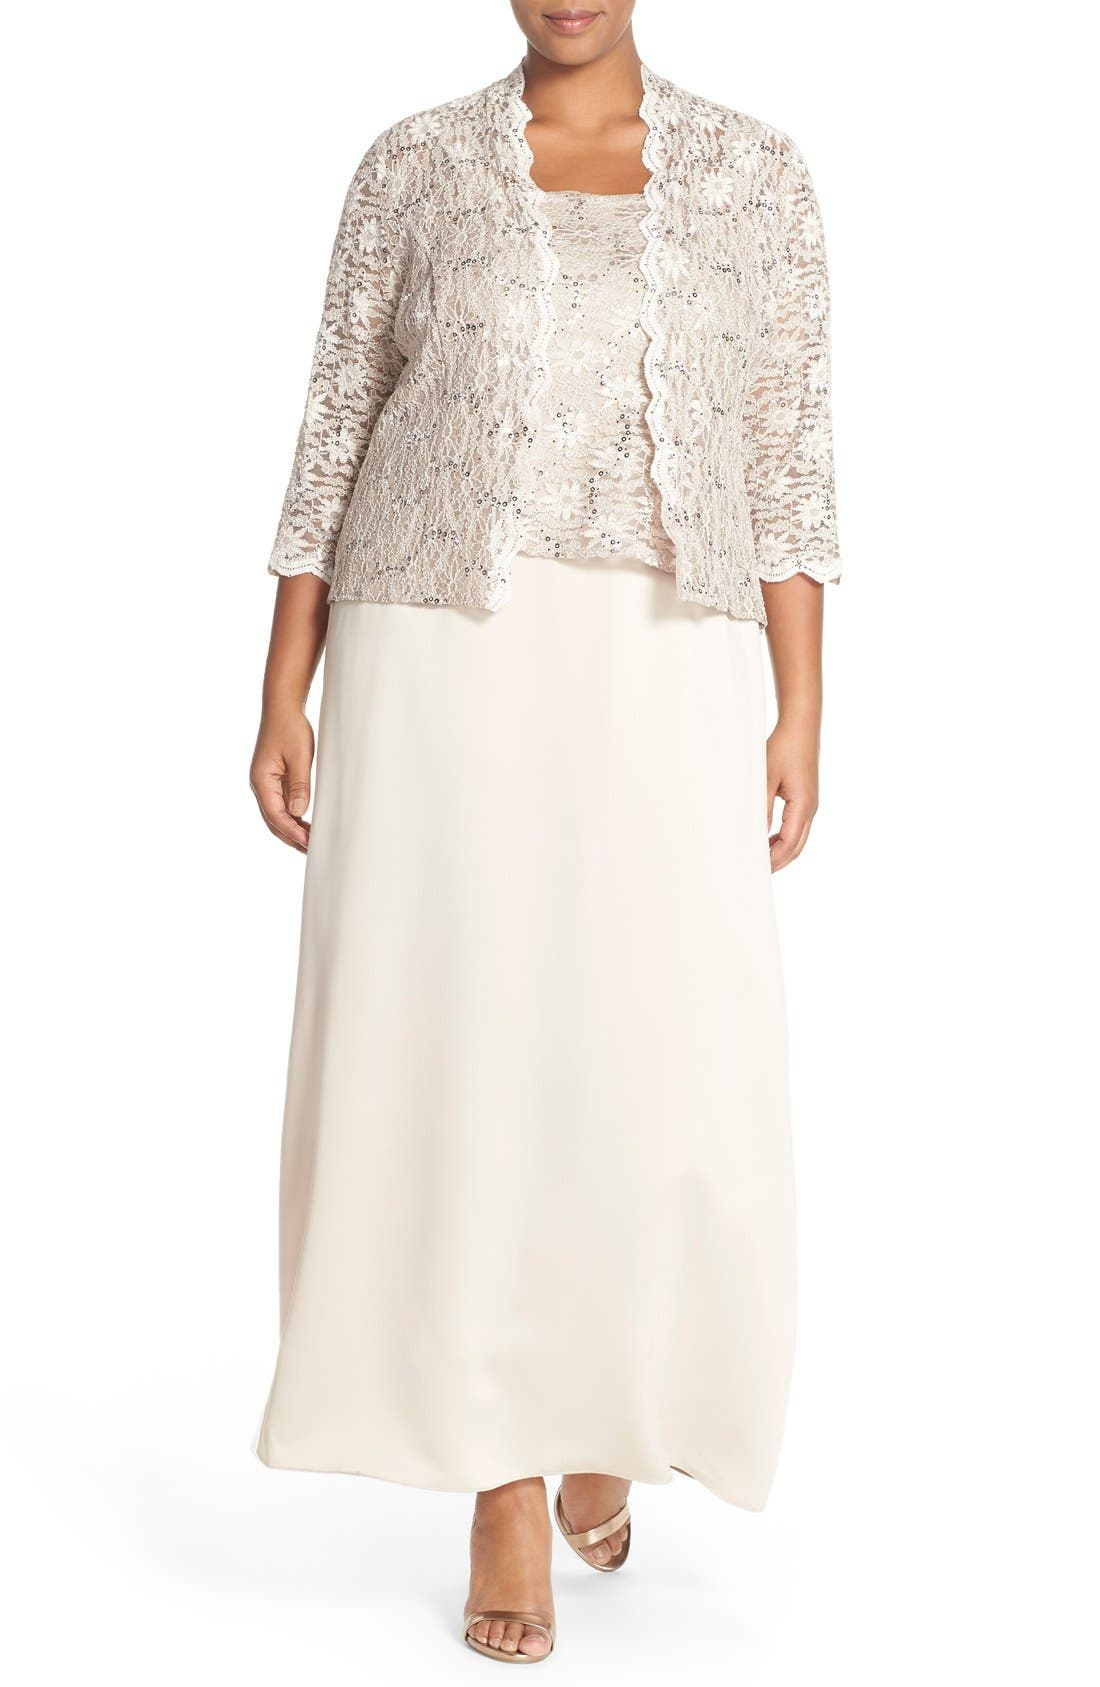 Alternate Image 1 Selected - Alex Evening A-Line Gown & Lace Jacket (Plus Size)